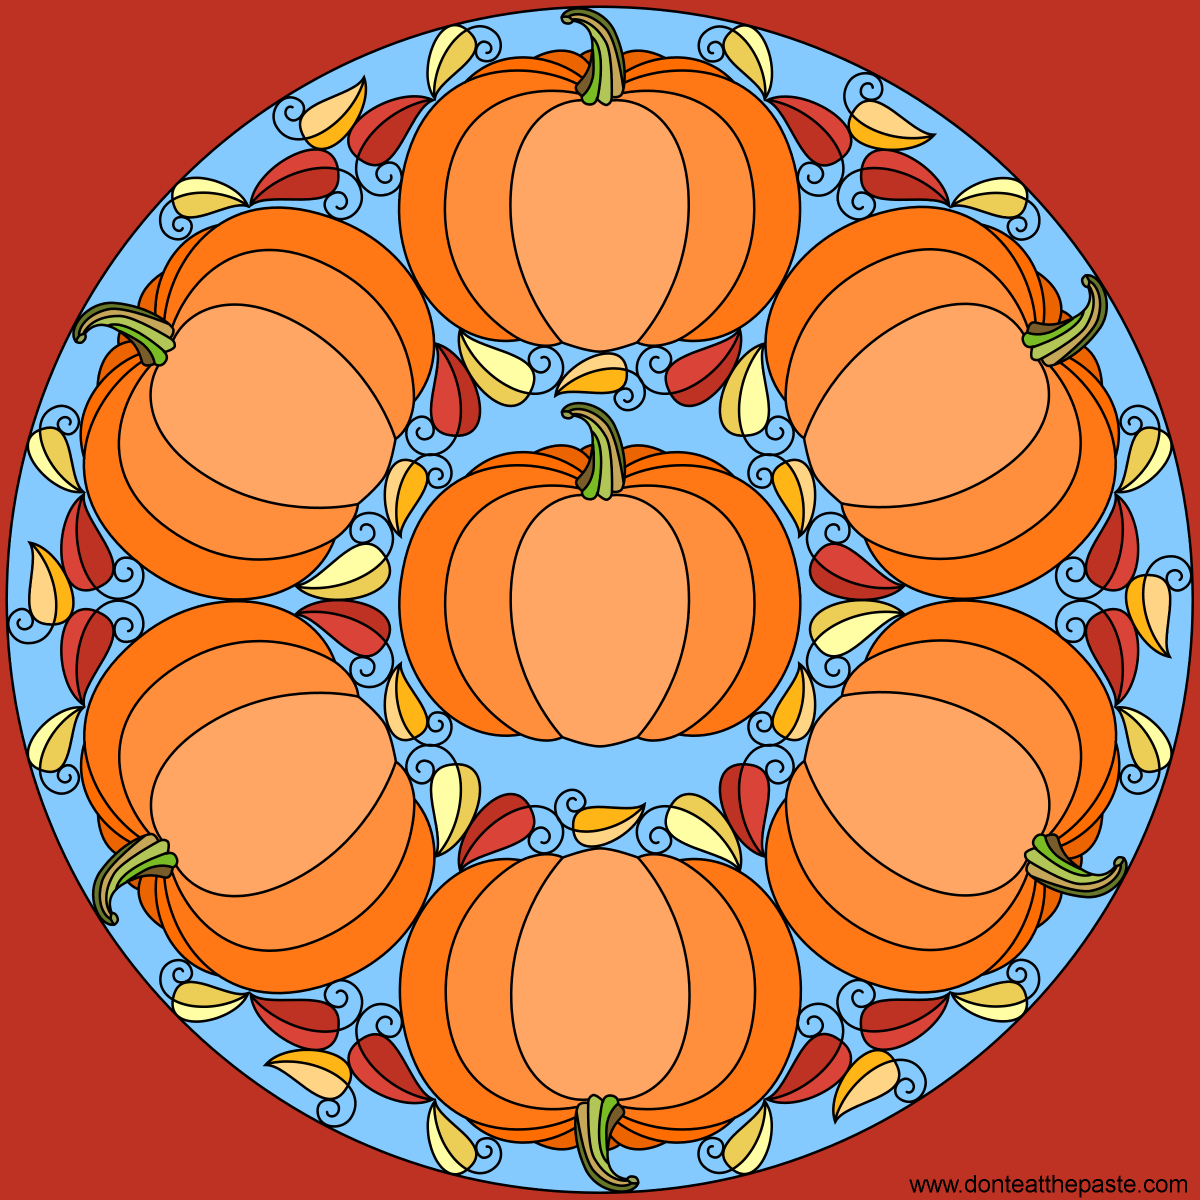 Pumpkin mandala for autumn- blank version available to color ...